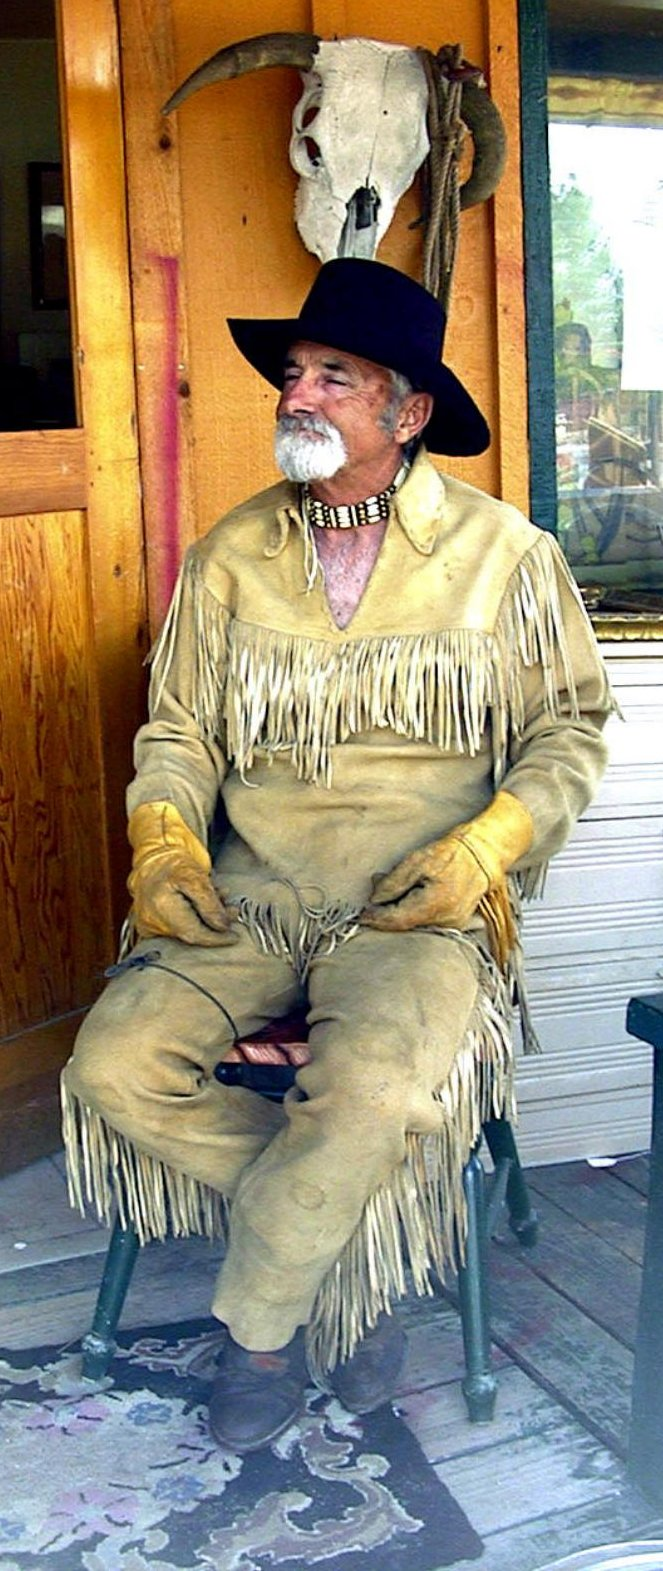 Ron Dakotah in his fringe on the front porch of the Rusty Cowboy